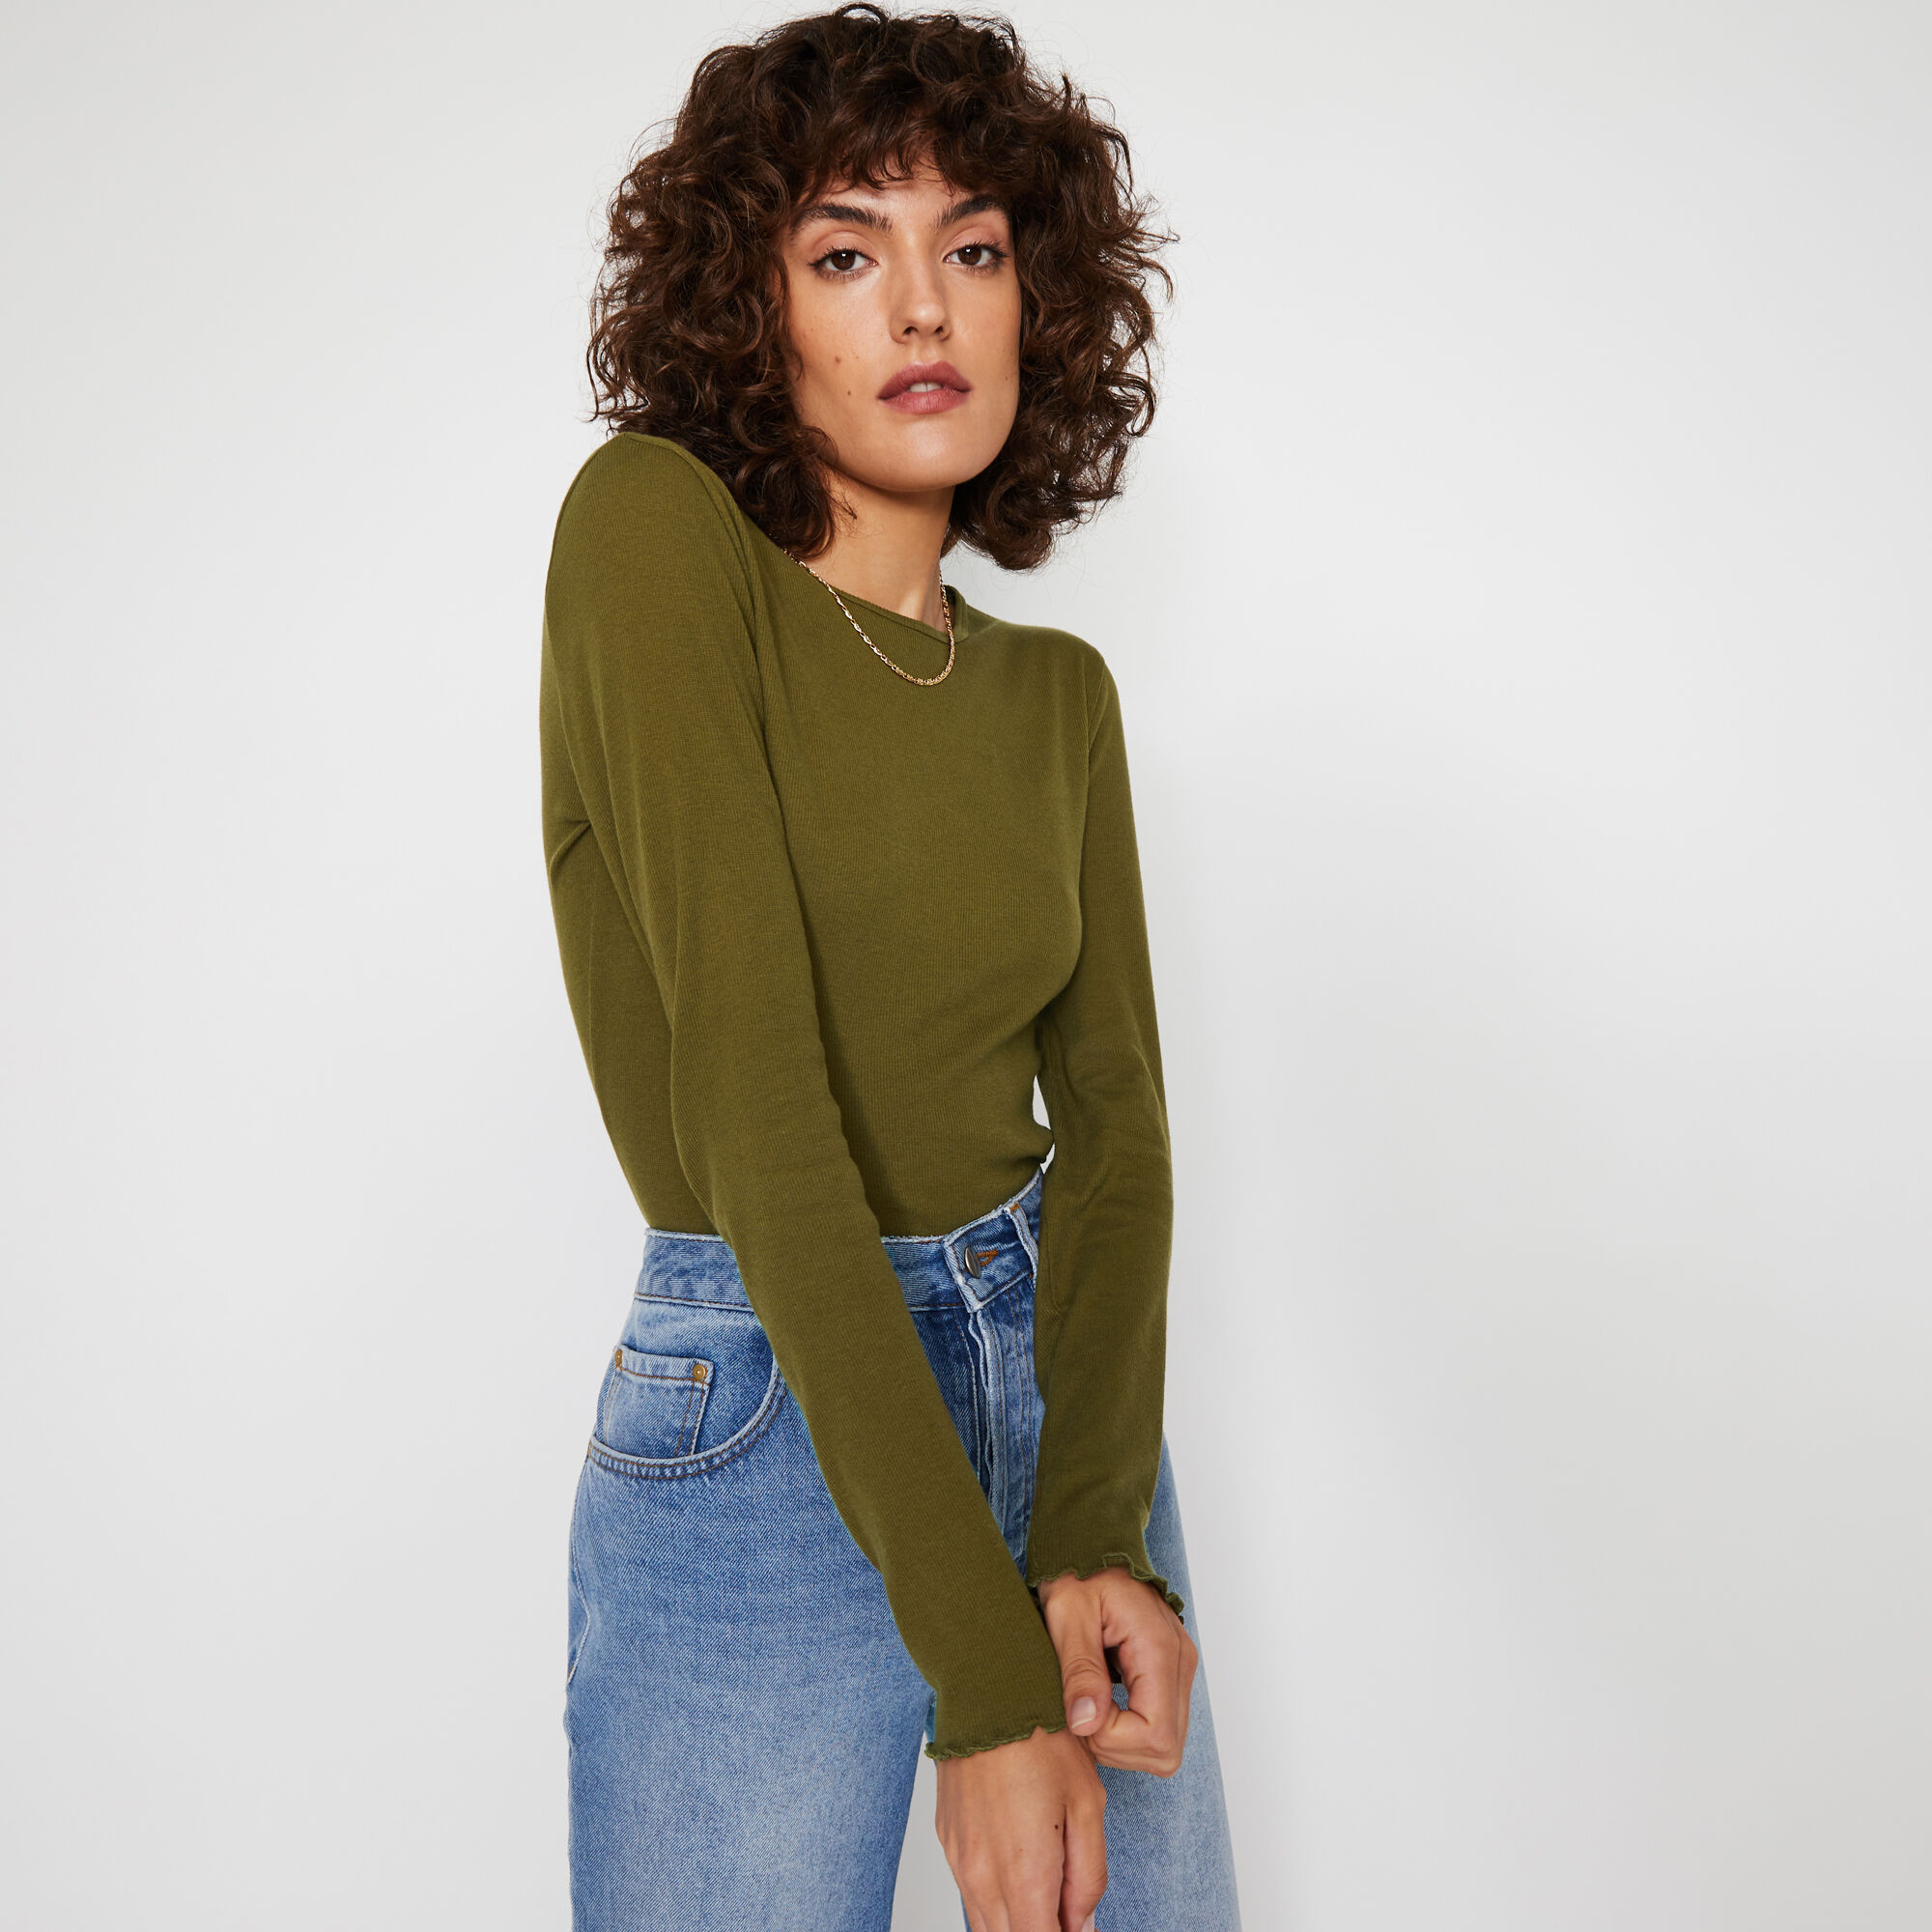 Warehouse, RIB LETTUCE LONG SLEEVE TOP Khaki 1